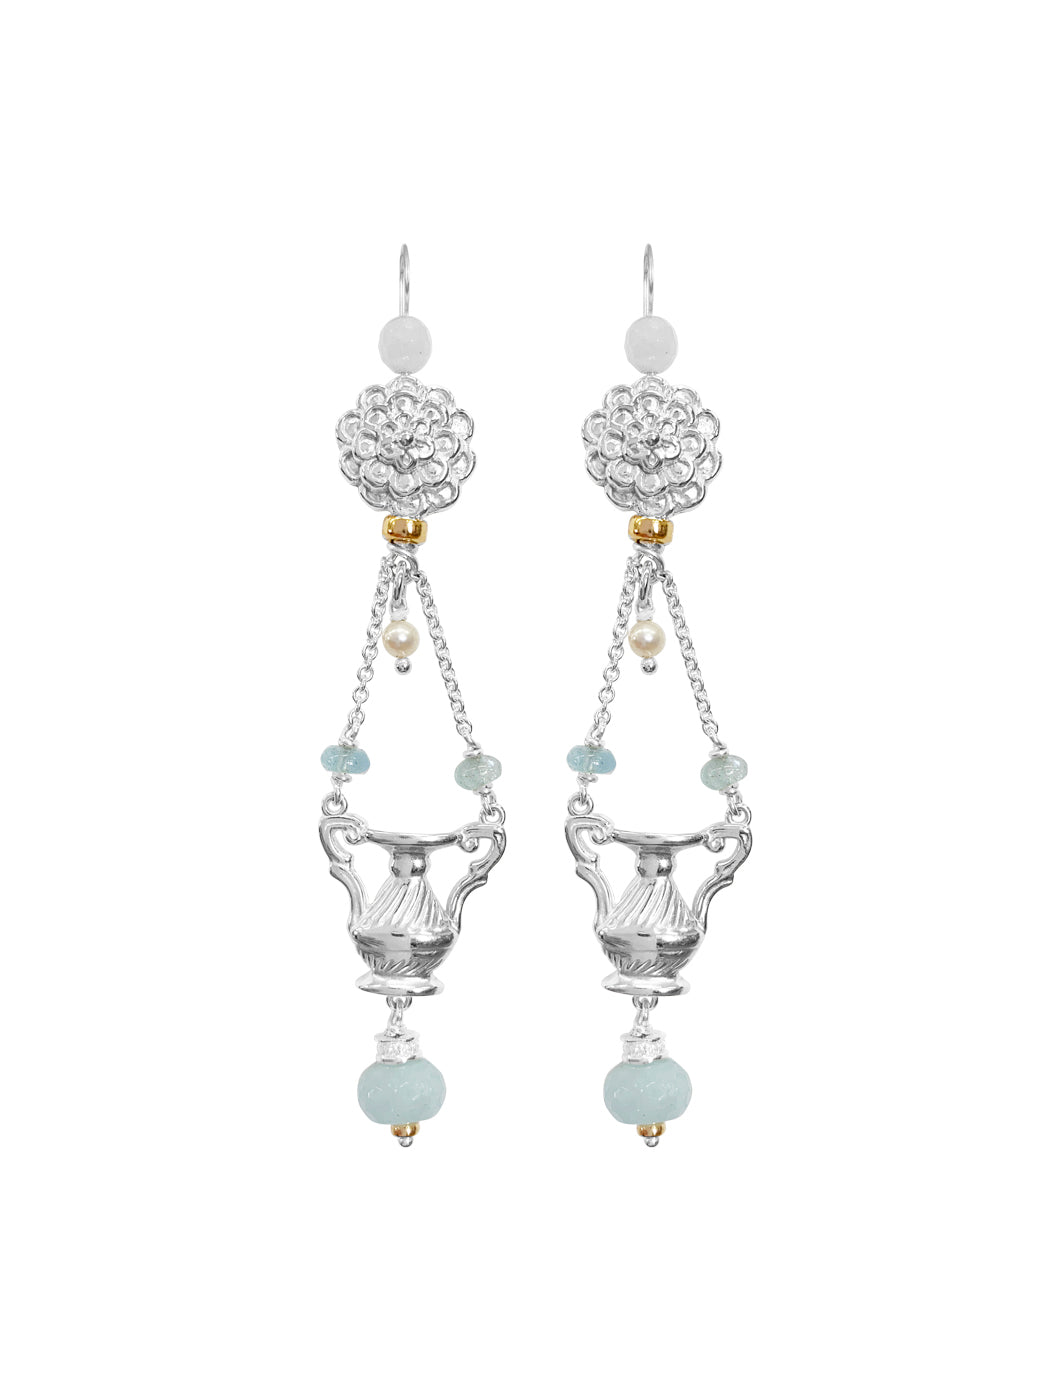 Fiorina Jewellery The Como Earrings Aquamarine